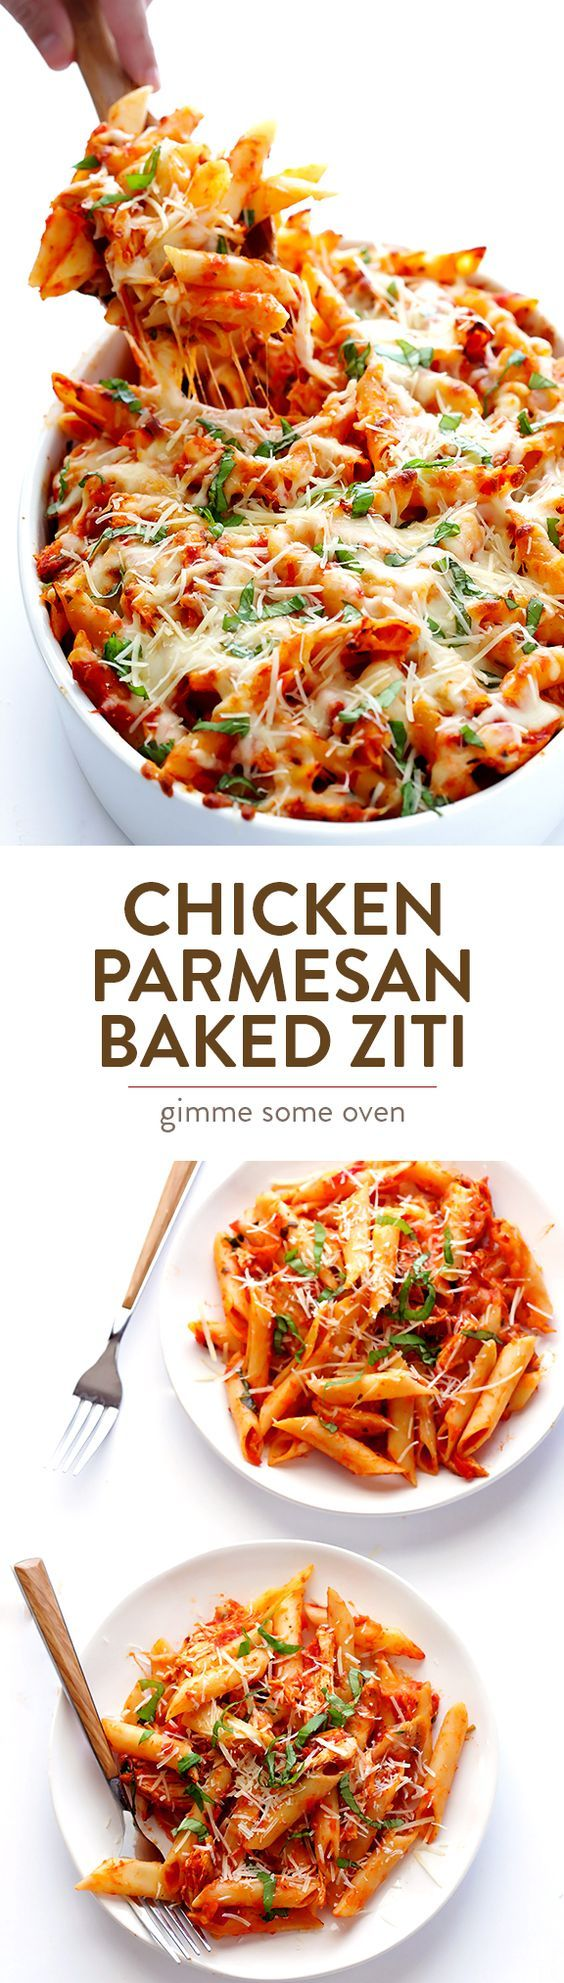 Chicken Parmesan Baked Ziti | Recipe